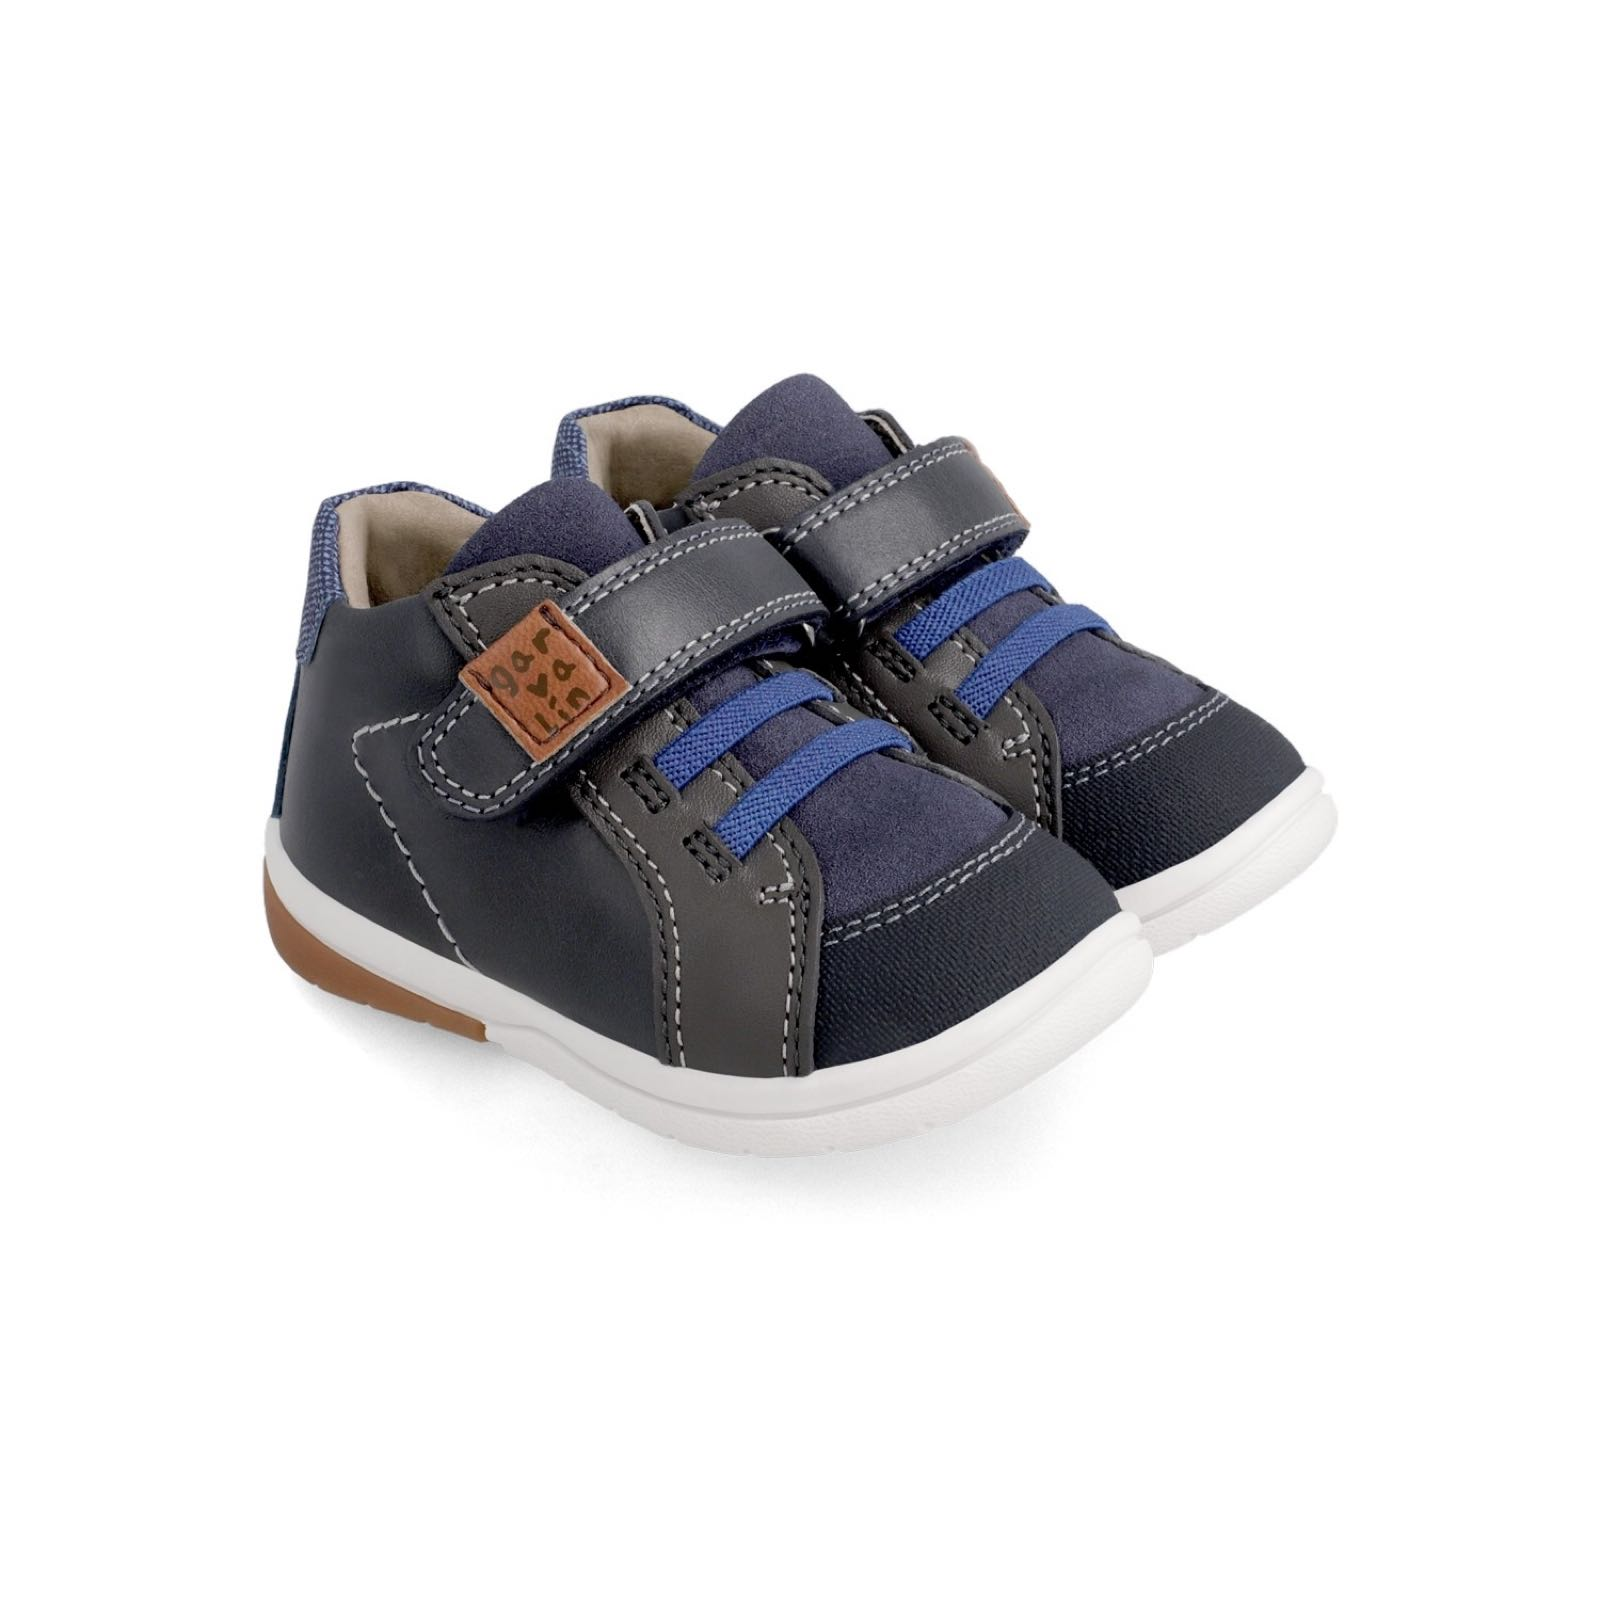 GARVALIN Navy and Brown Trainers 211602